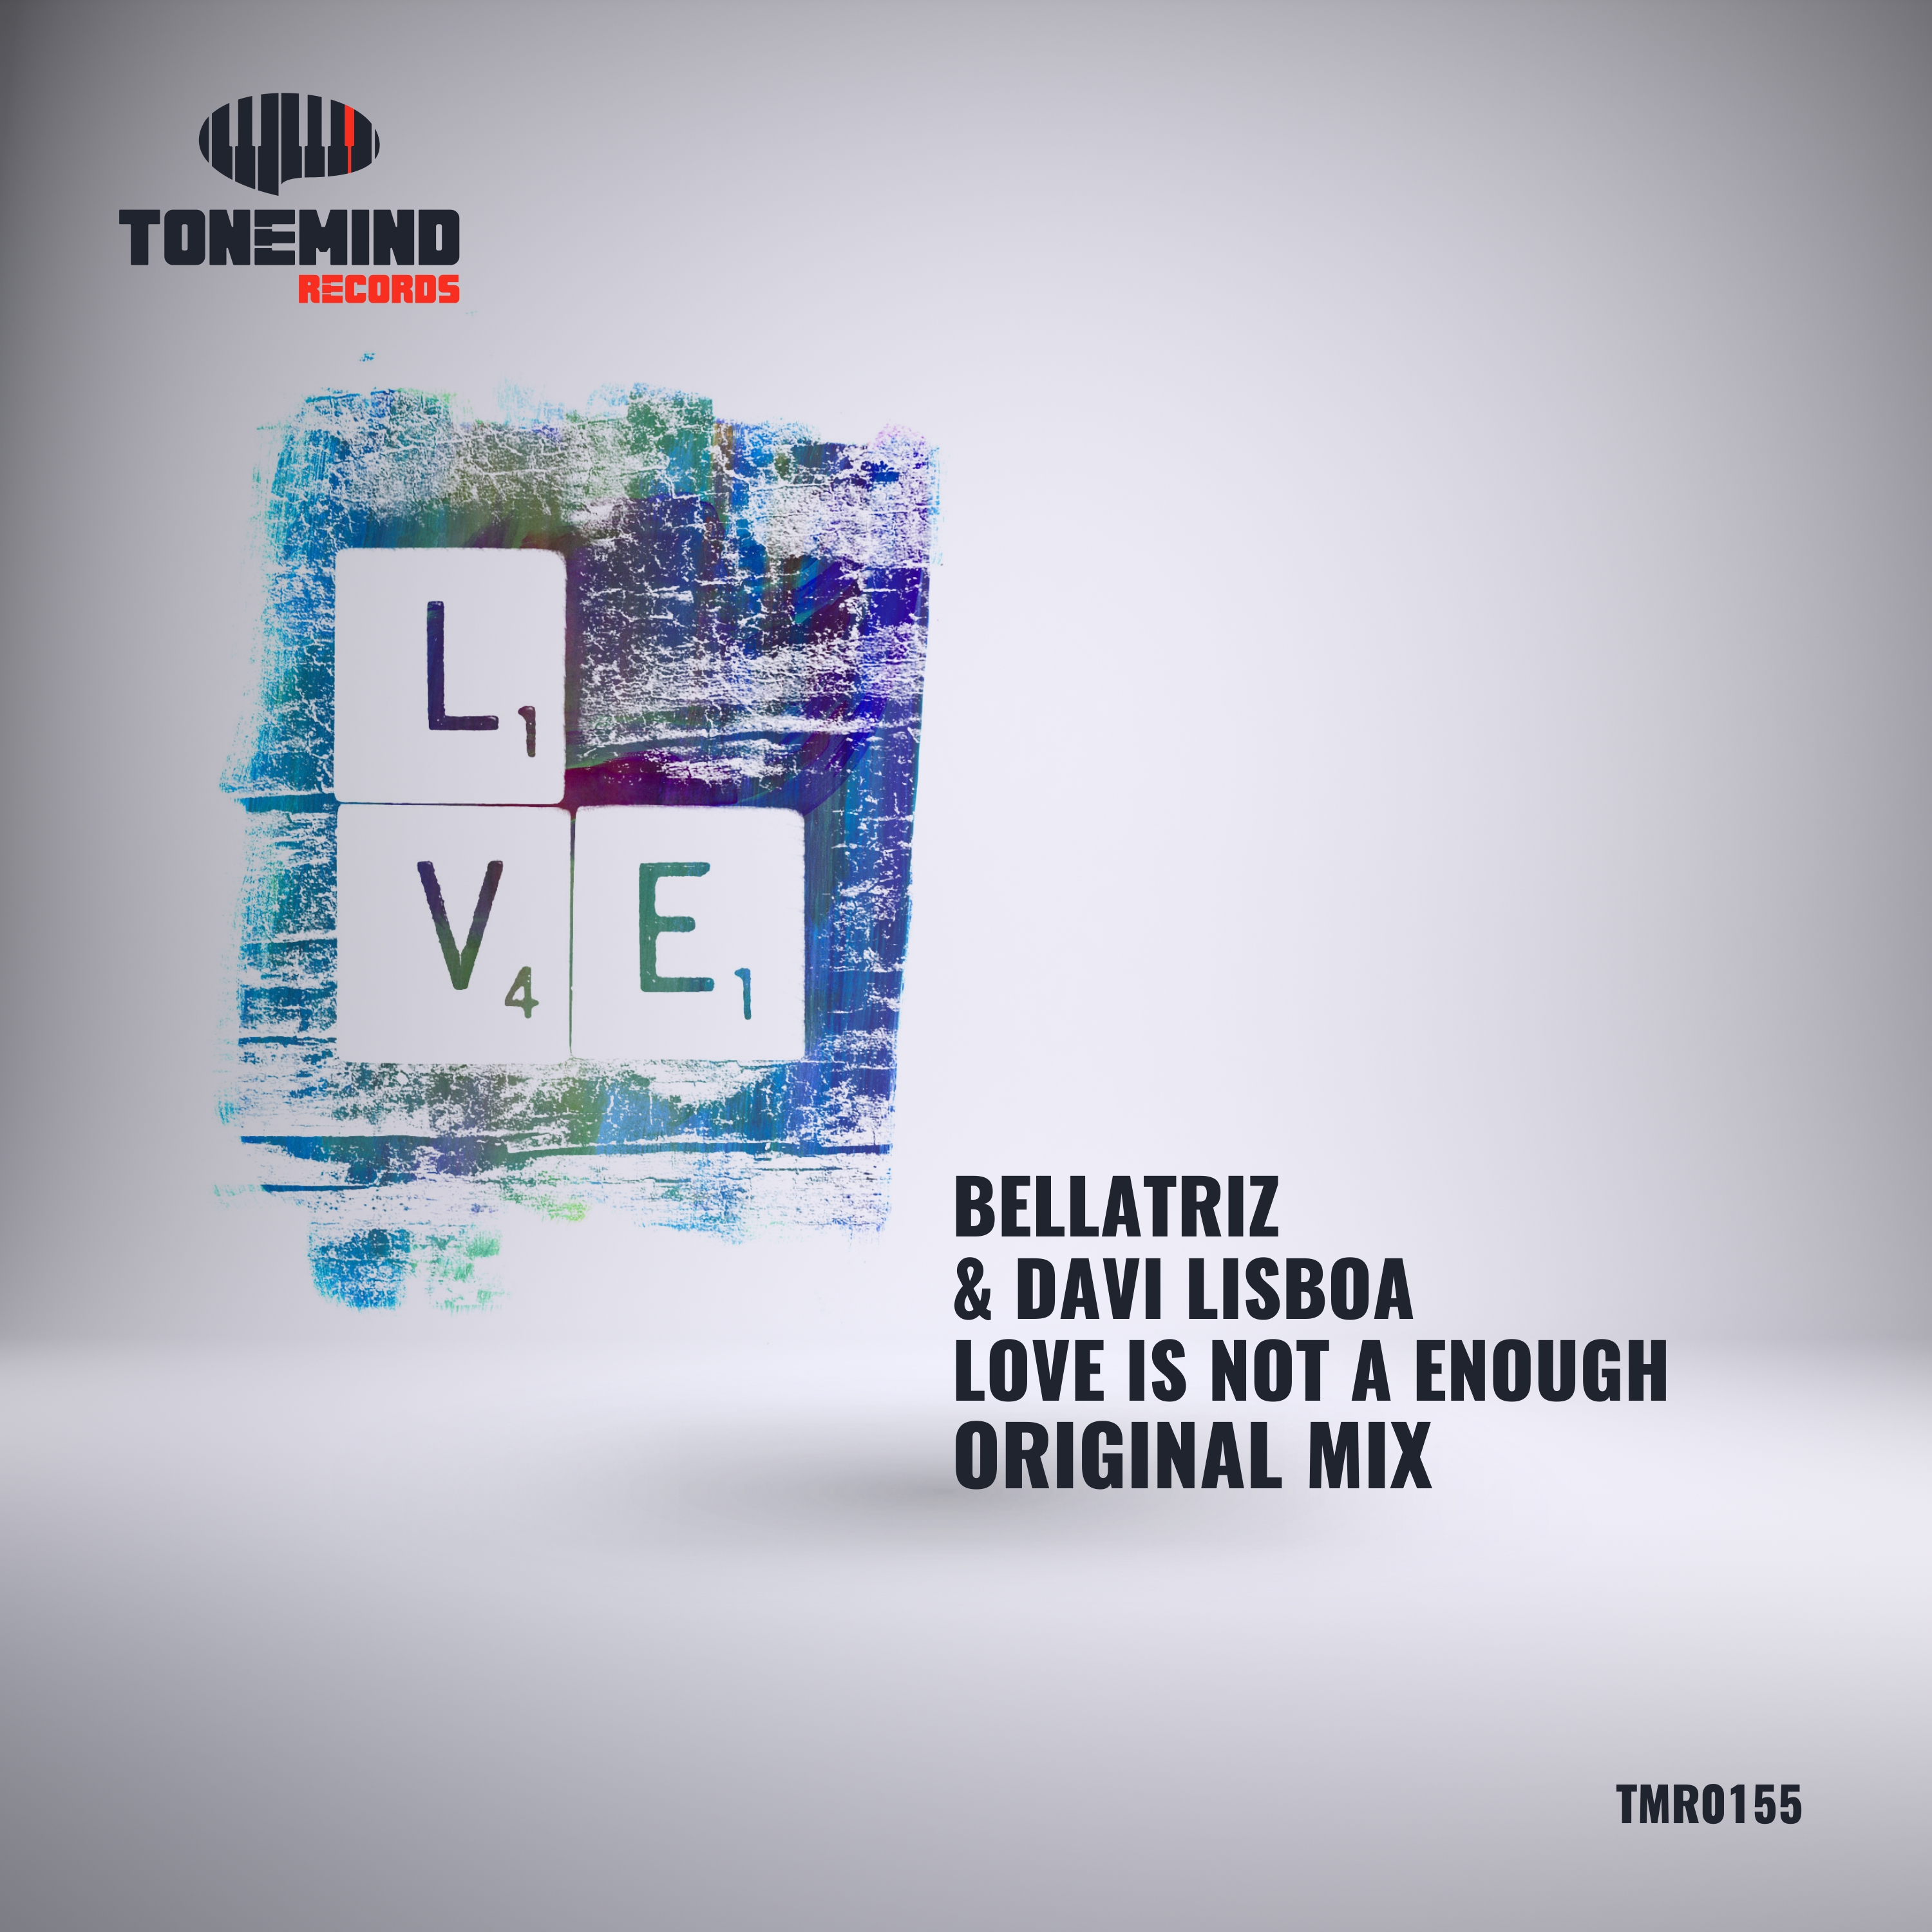 Bellatriz & Davi Lisboa - Love Is Not A Enough (Radio mix)